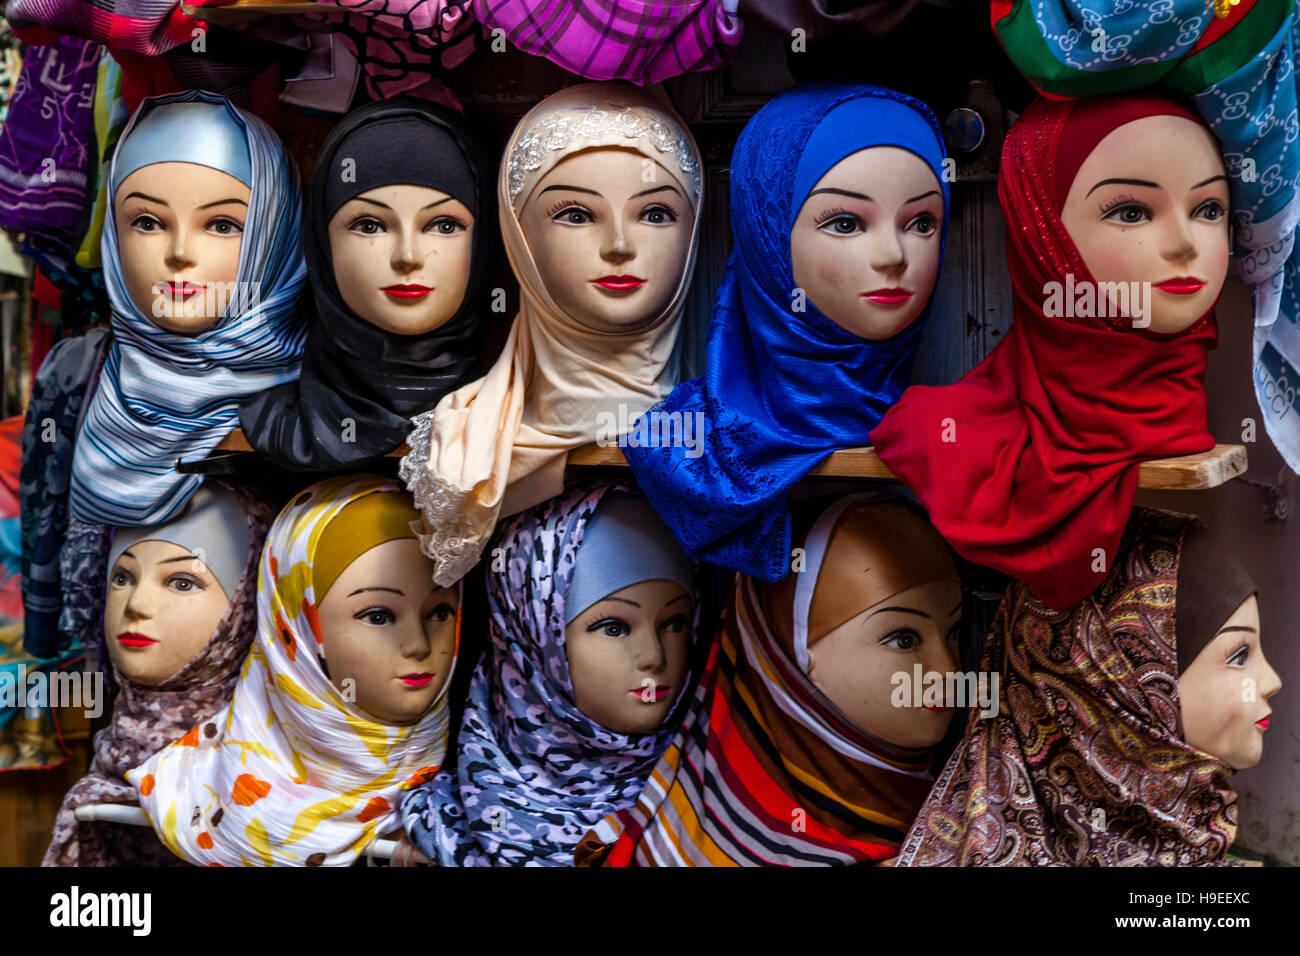 Colourful Hijabs For Sale In The Medina, Fez el Bali, Fez, Morocco - Stock Image